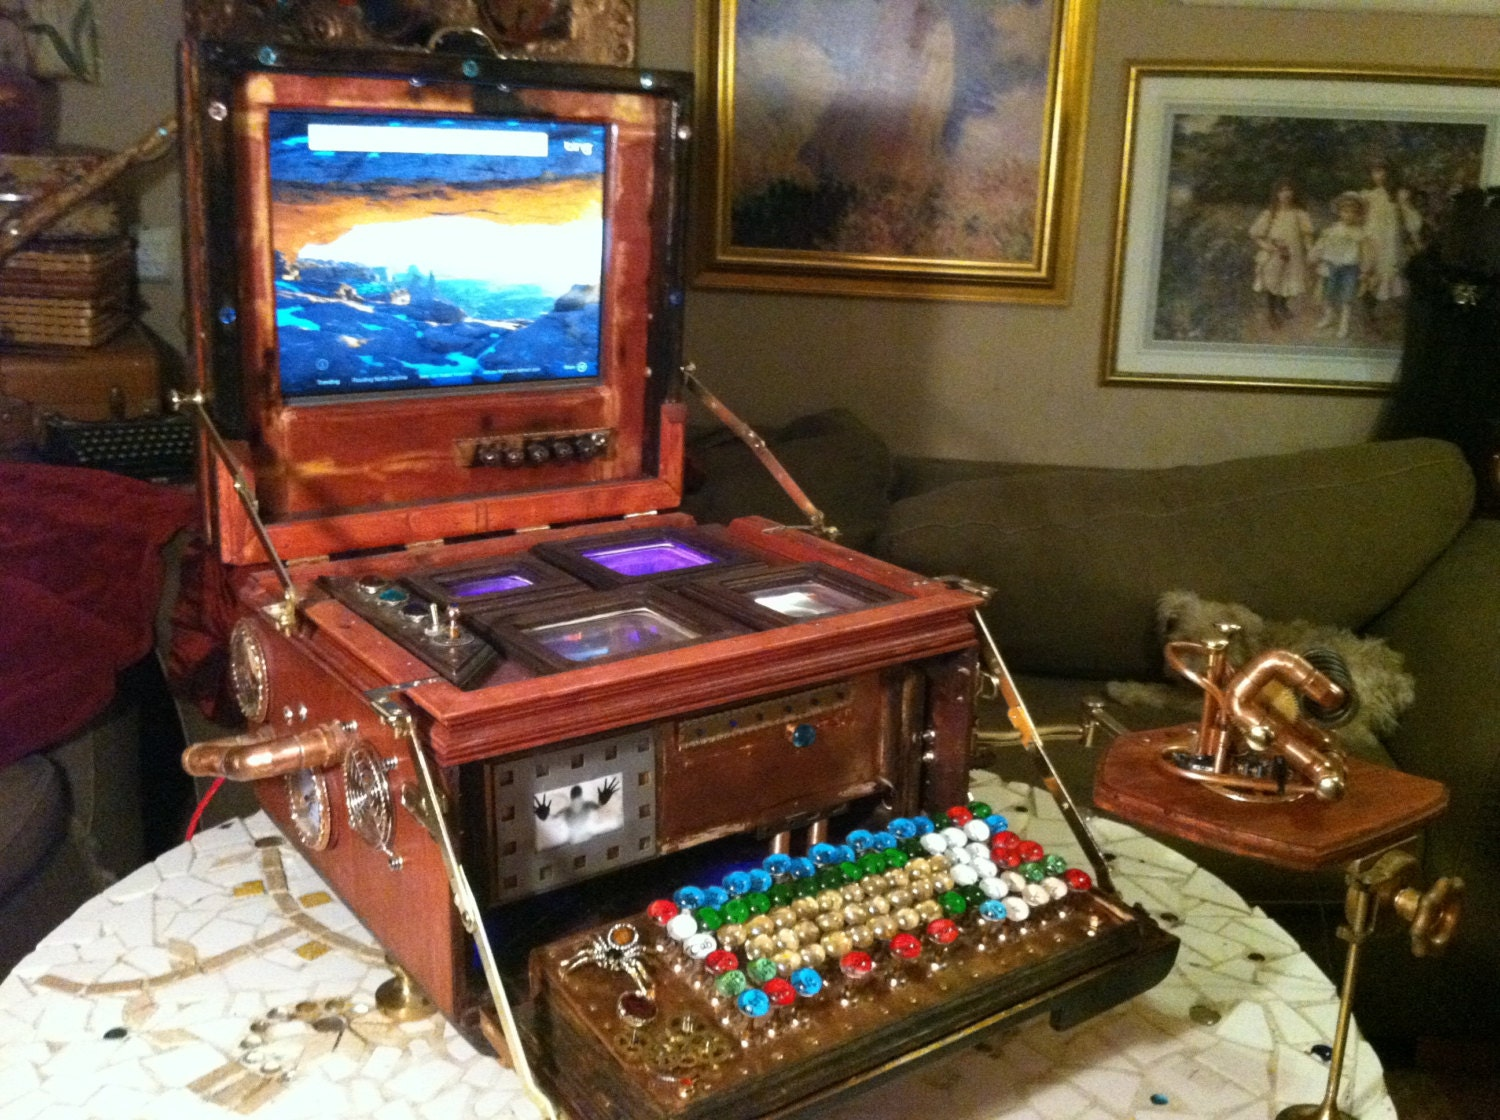 Lady Victoria - Post Apocalyptic Steampunk Computer - RagsGower